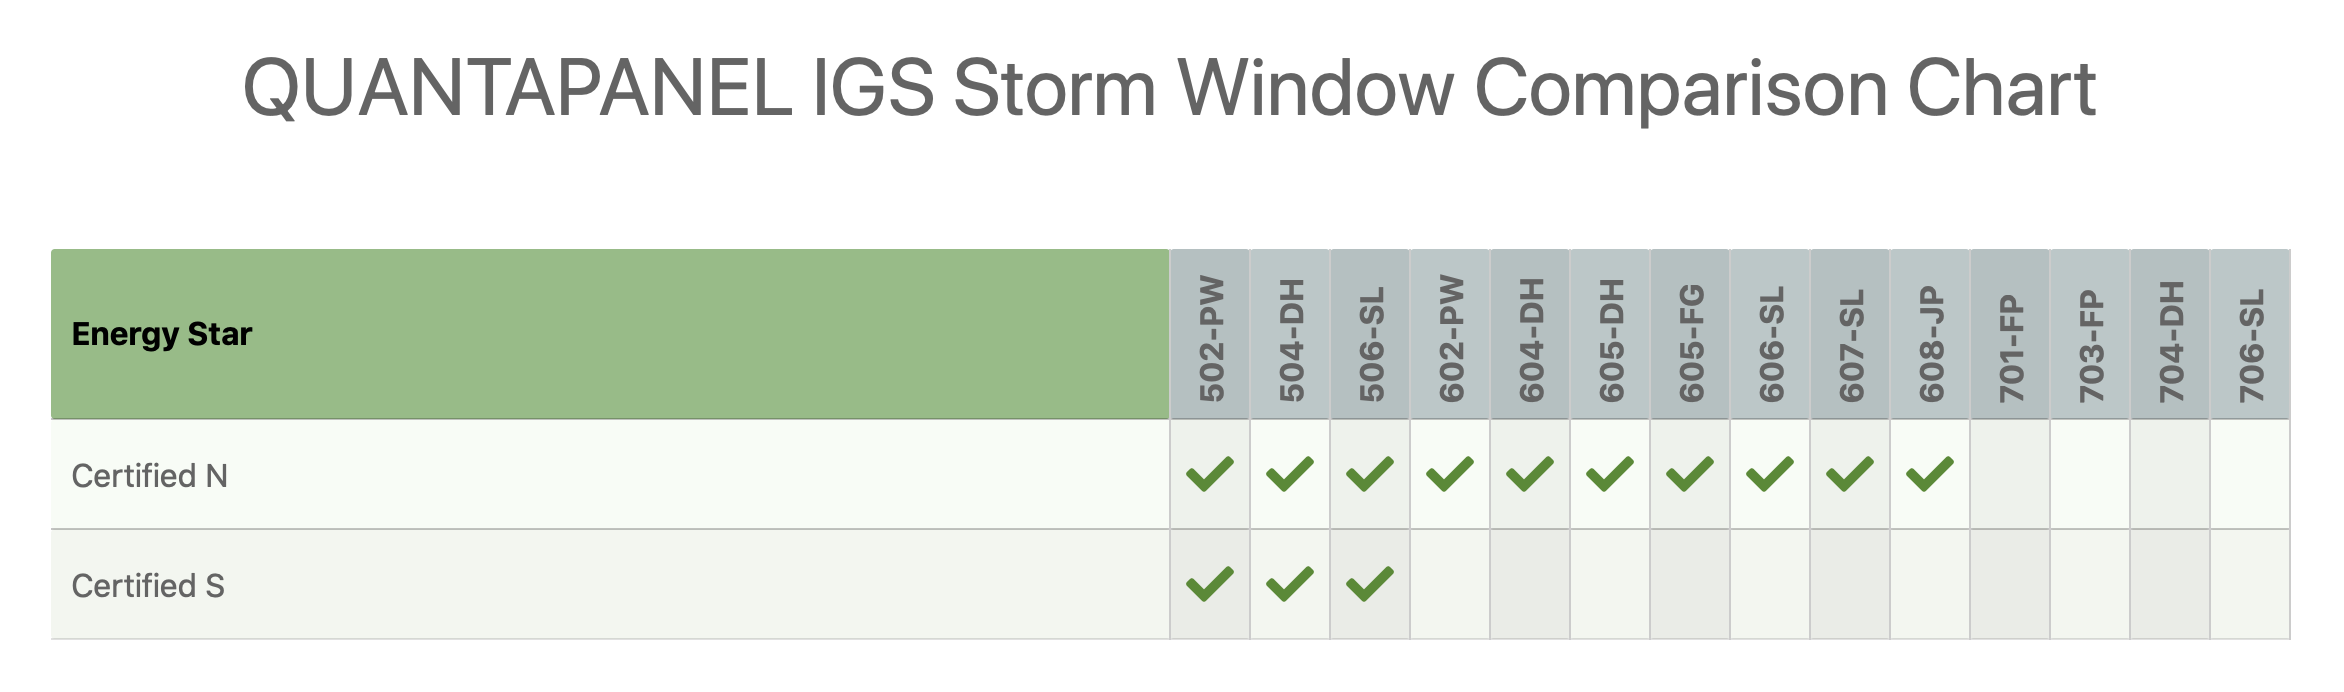 Storm Window Comparison Chart